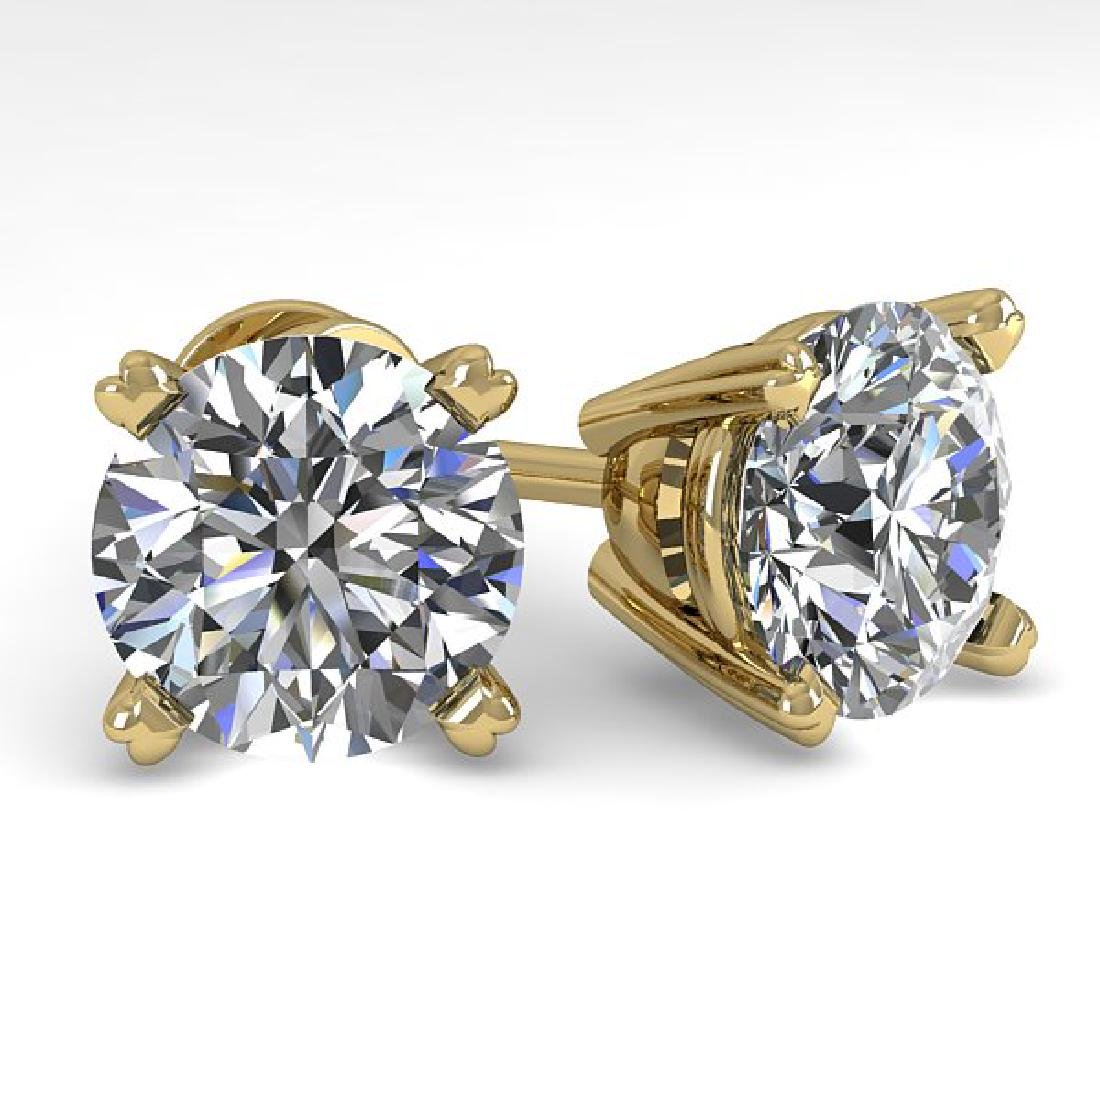 4 CTW Certified VS/SI Diamond Stud Earrings 14K Yellow